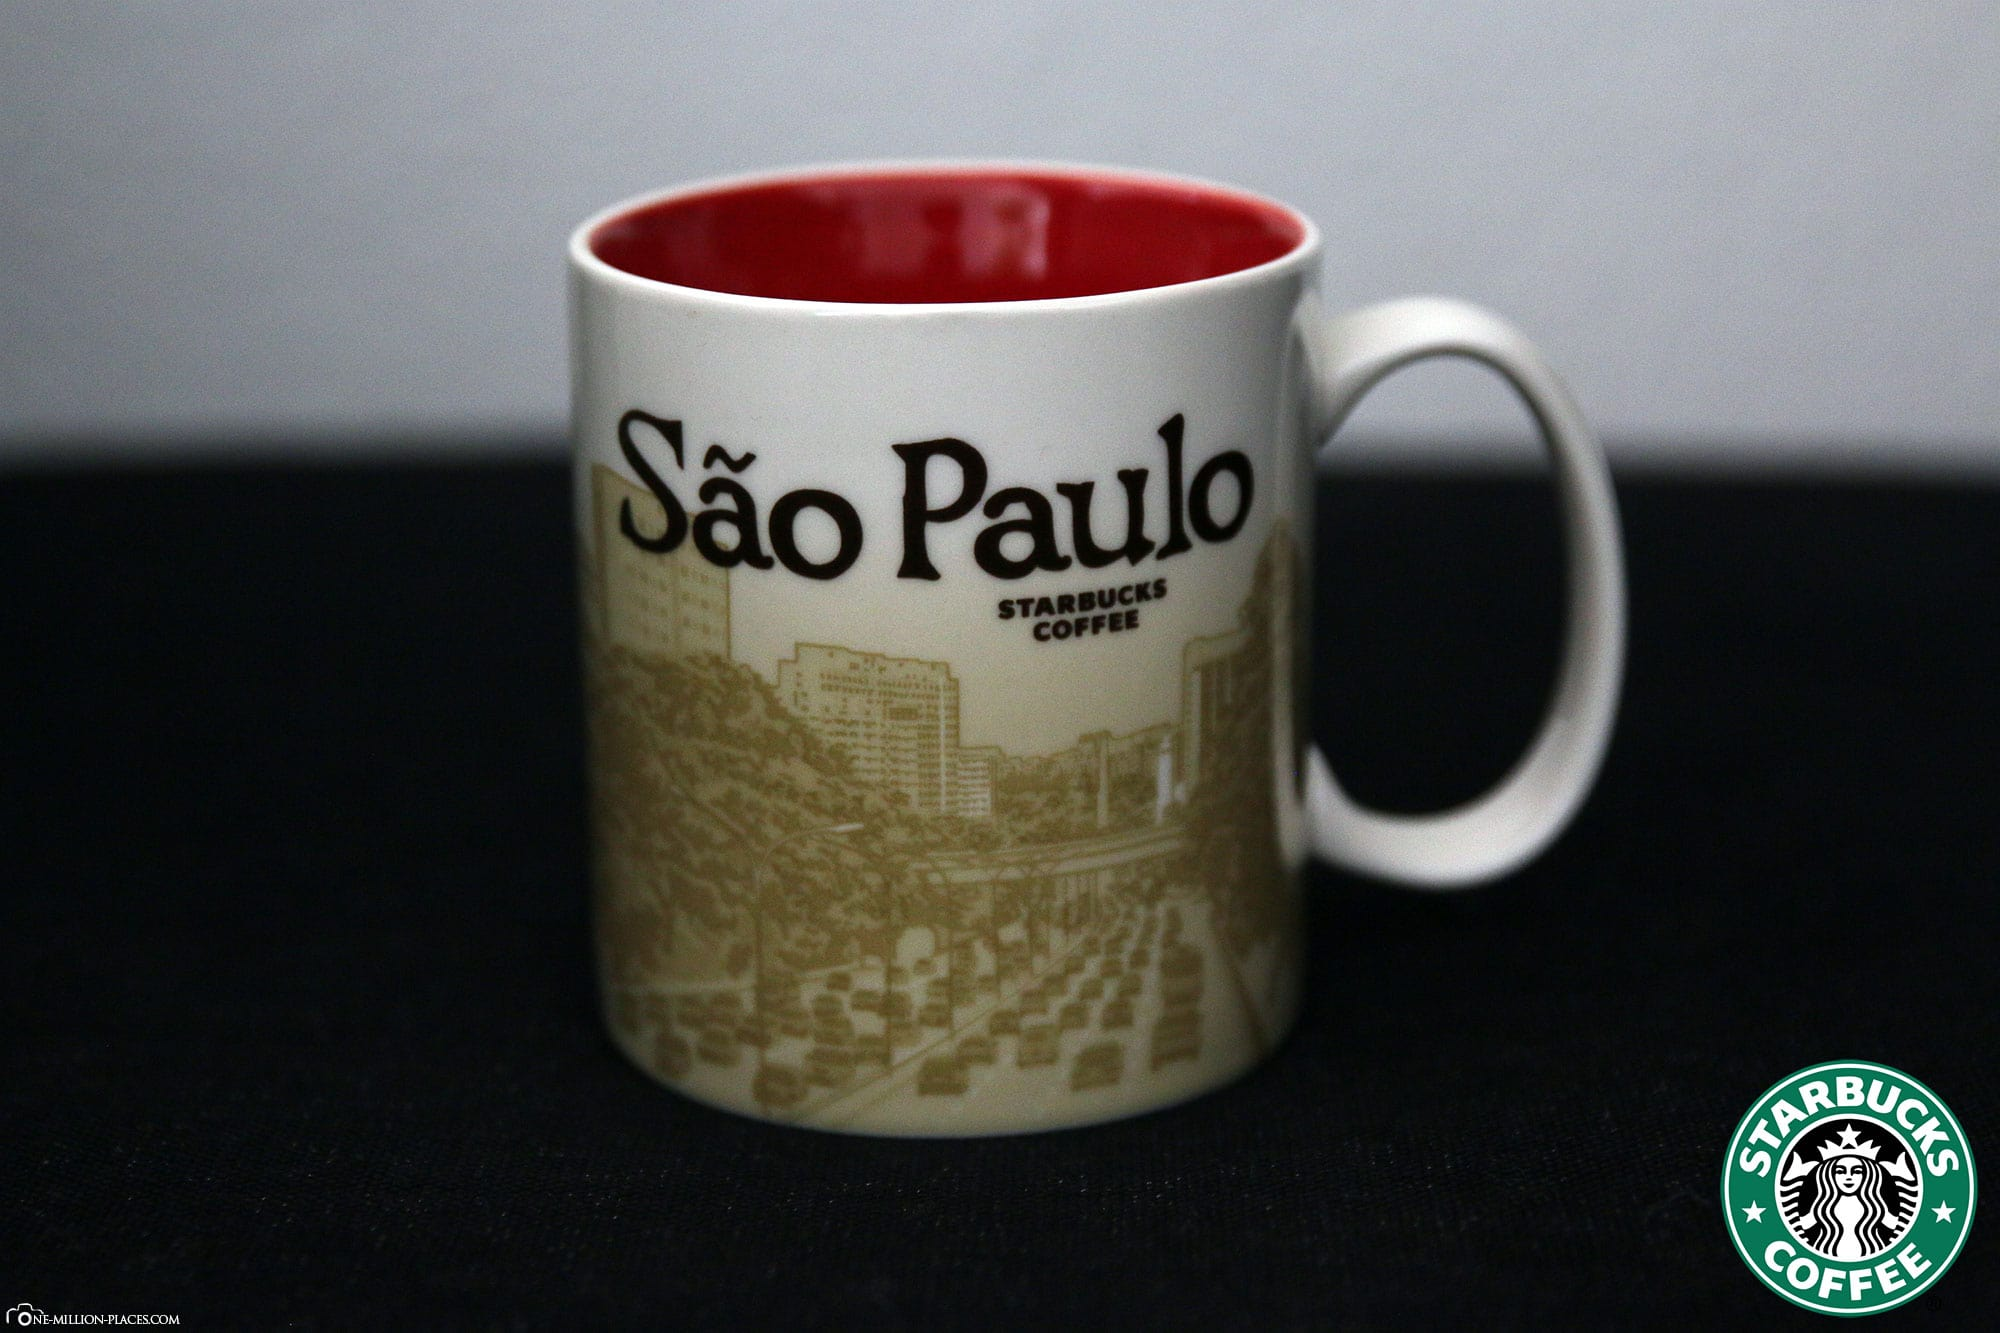 Sao Paulo, Starbucks Tasse, Global Icon Serie, City Mugs, Sammlung, Brasilien, Reisebericht